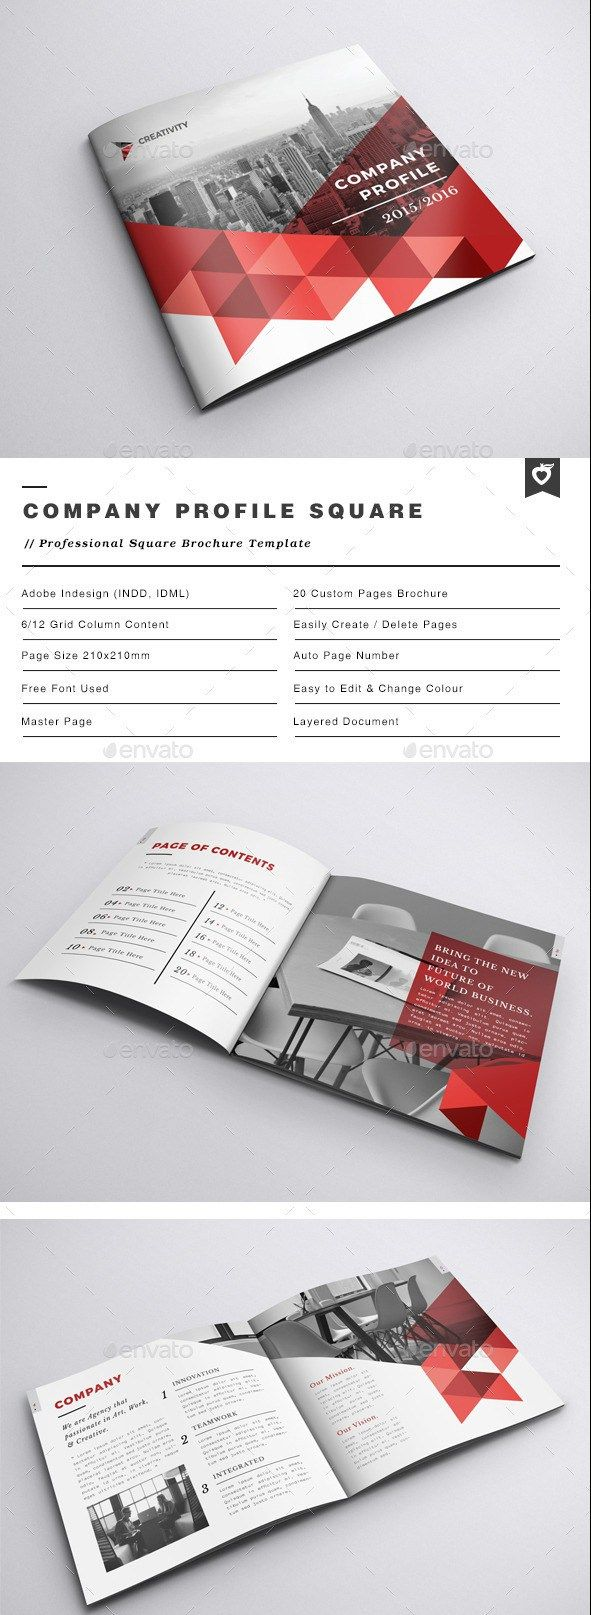 Free Profile Templates Company Profile Square Brochure  Design  Pinterest  Company .